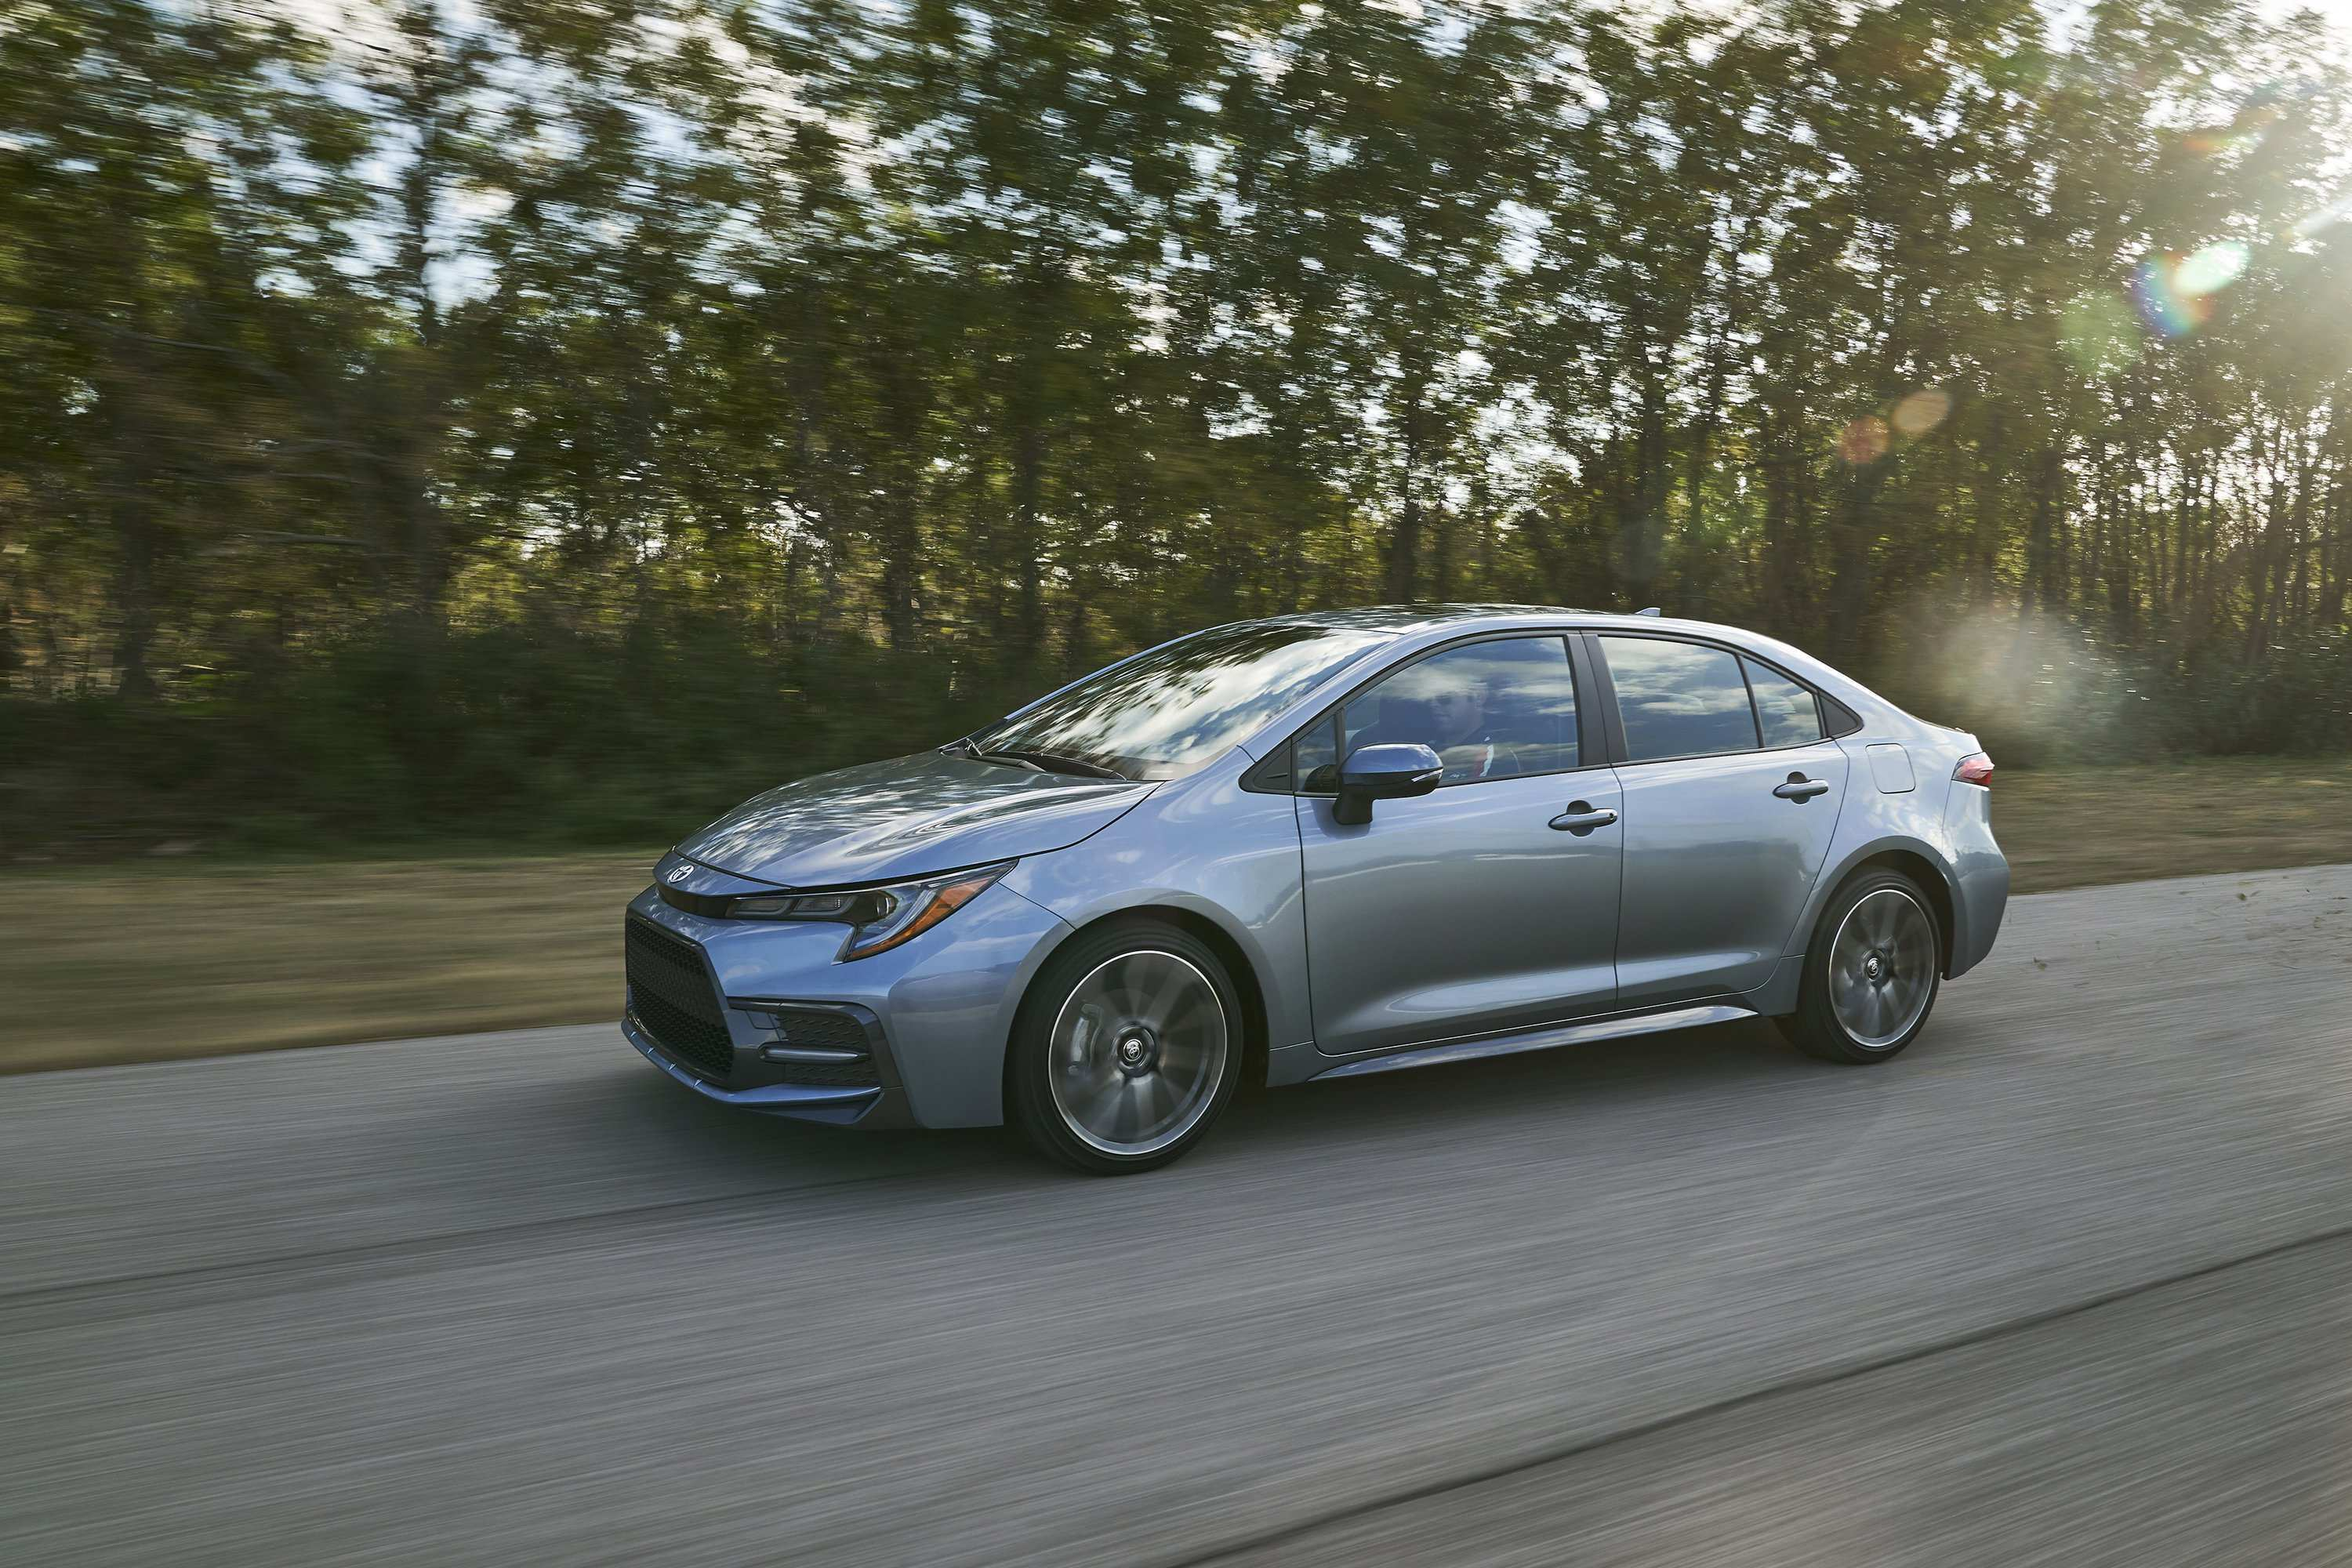 26 All New 2020 Toyota Corolla Hatchback Research New